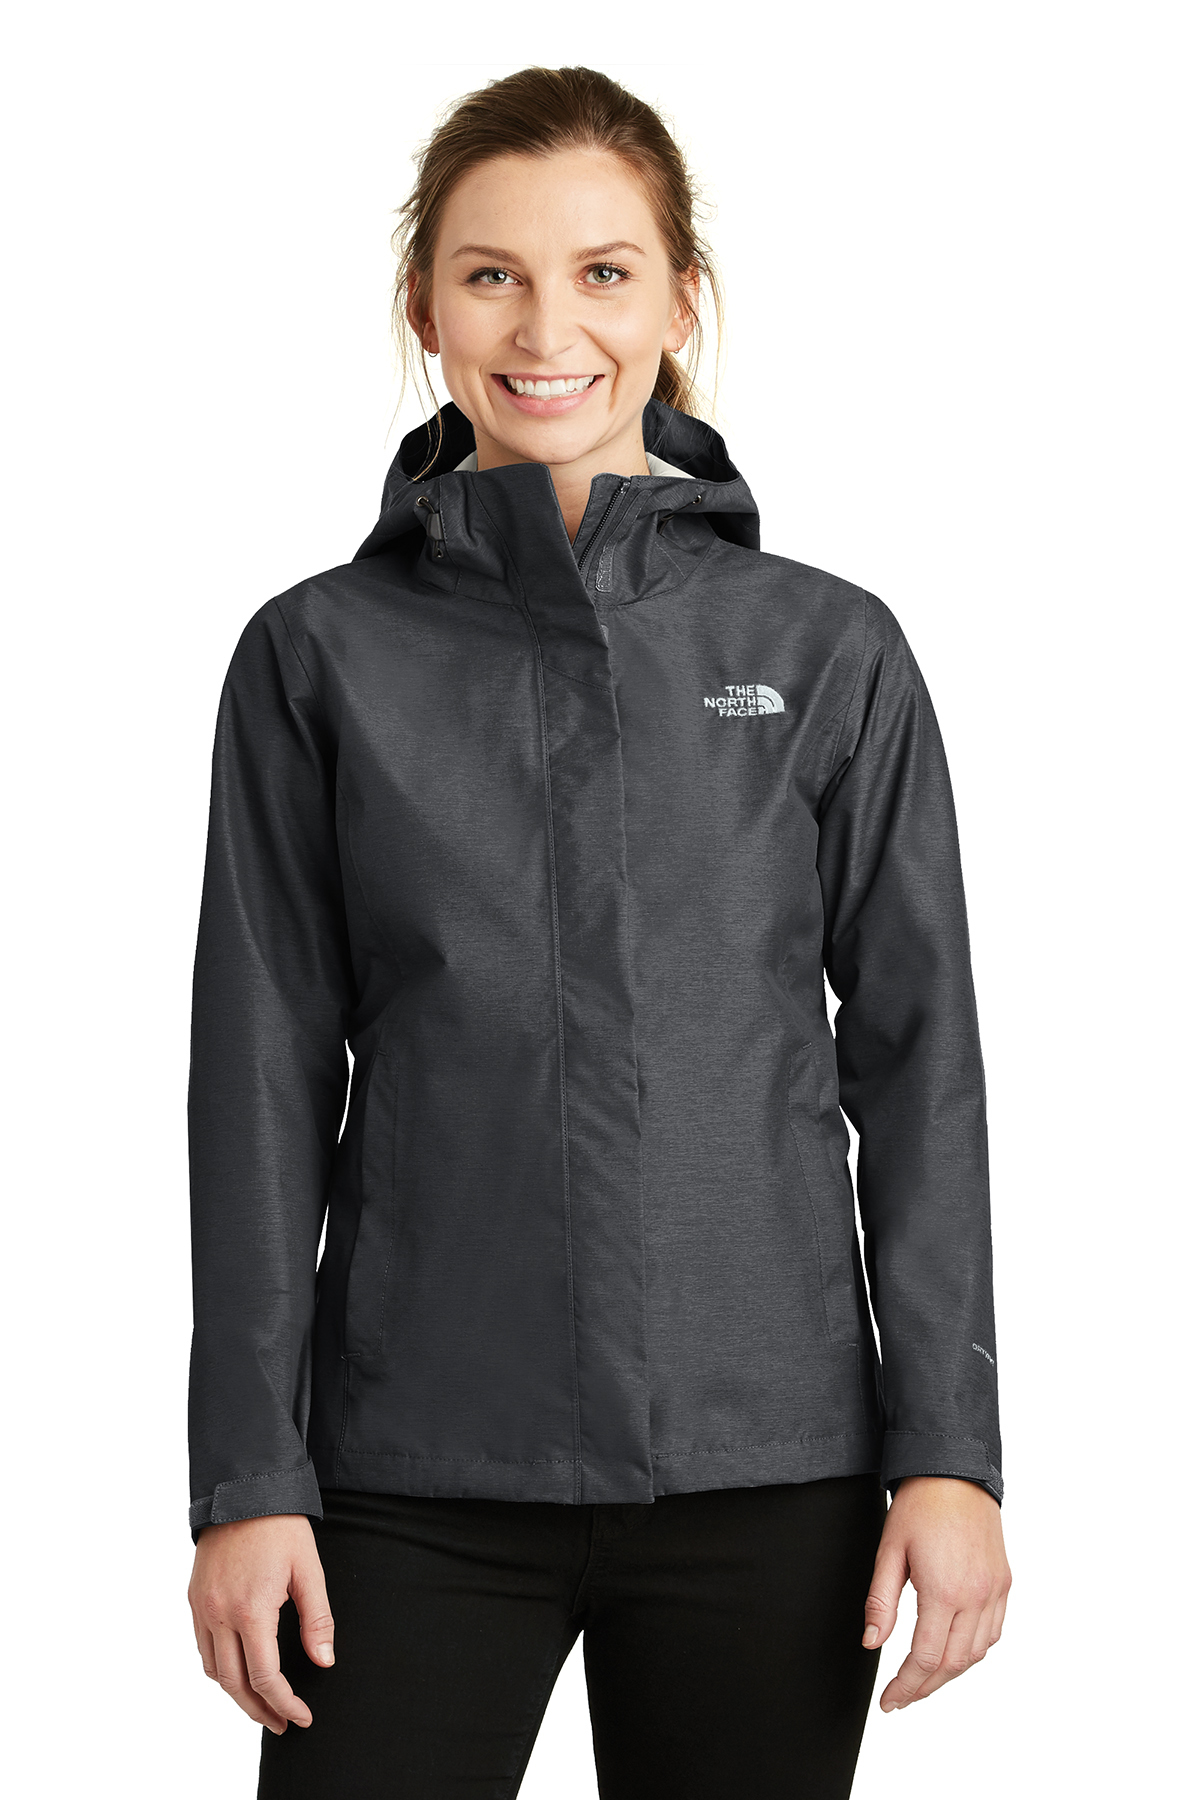 The North Face® NF0A3LH5 - Ladies DryVent Rain ...